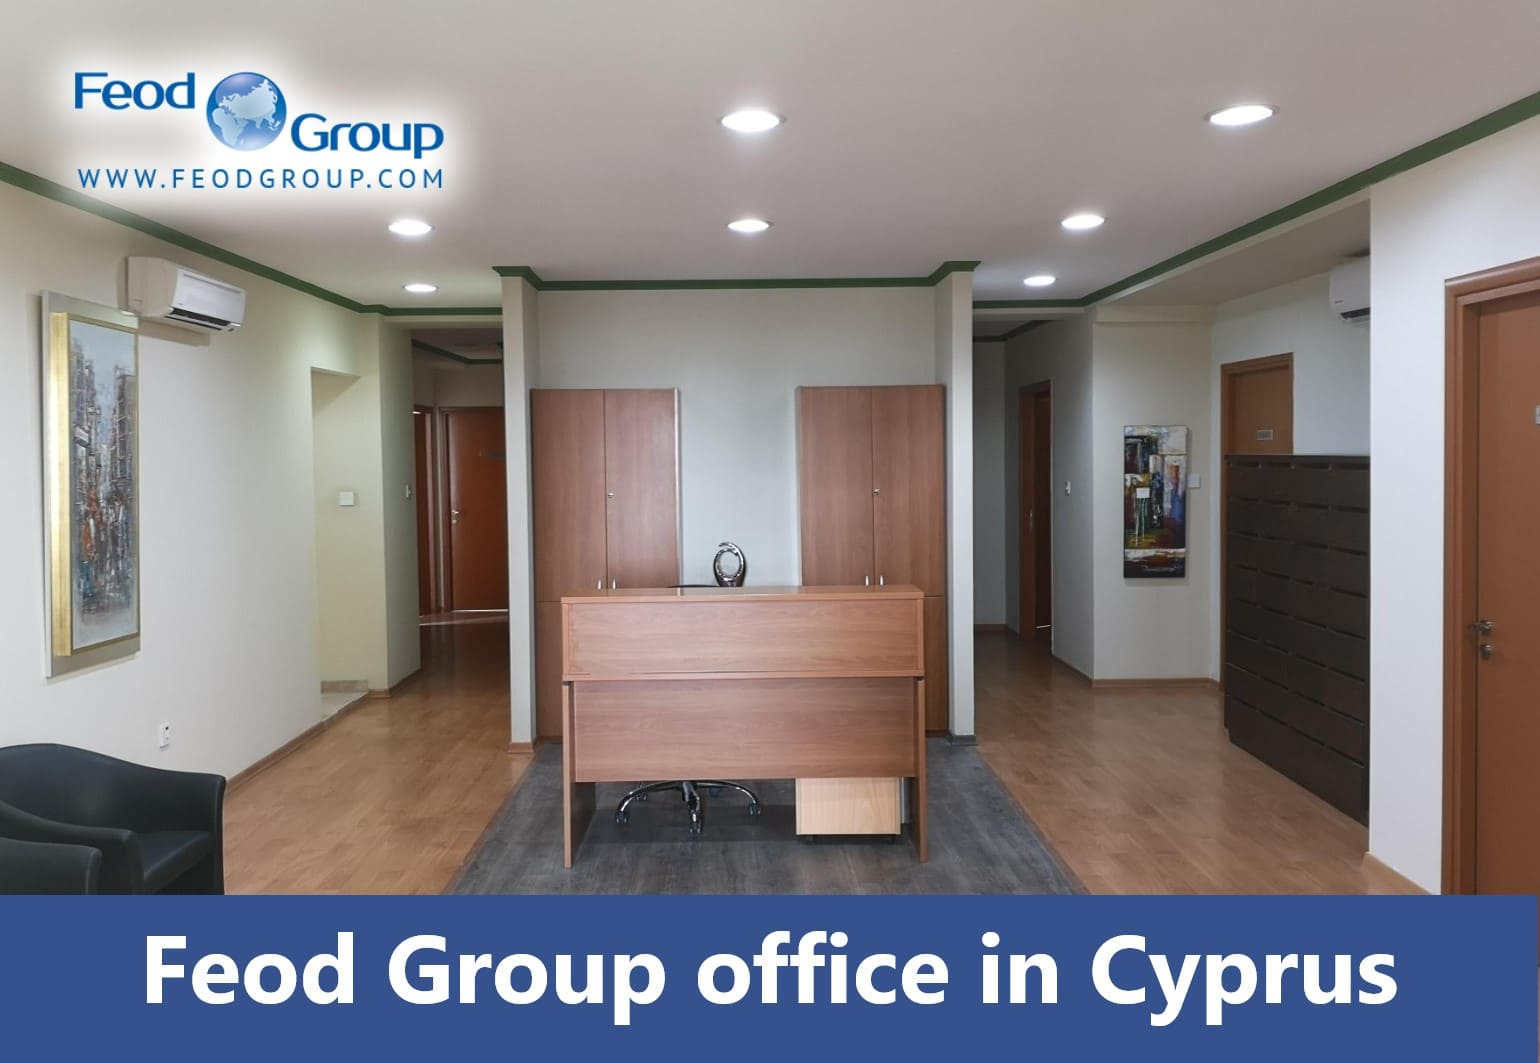 New office in Cyprus!